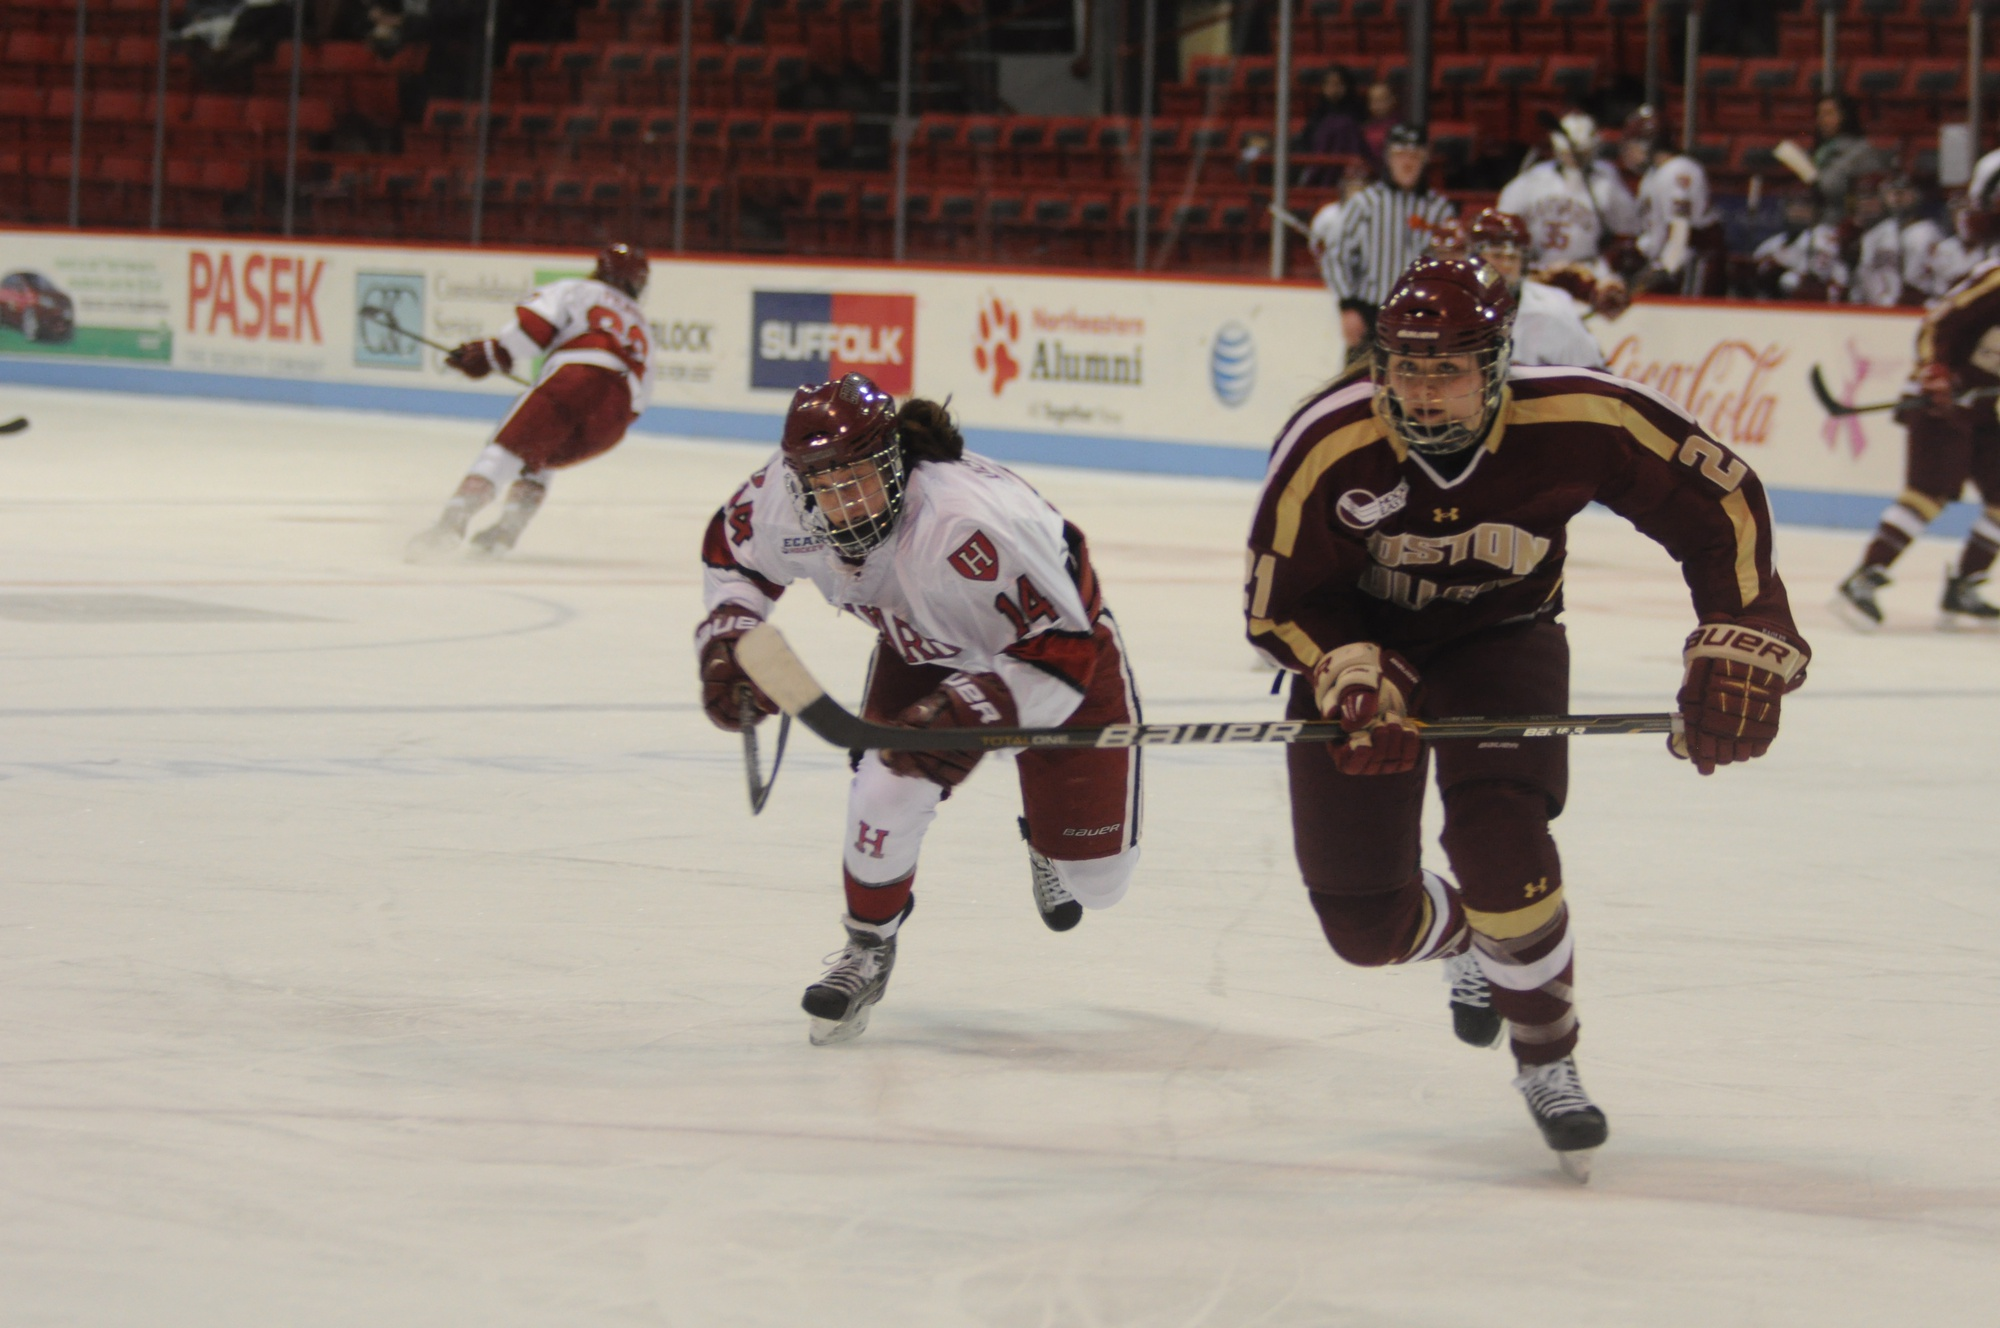 Jillian Dempsey '13 hustles back into the play against Boston College in 2013.